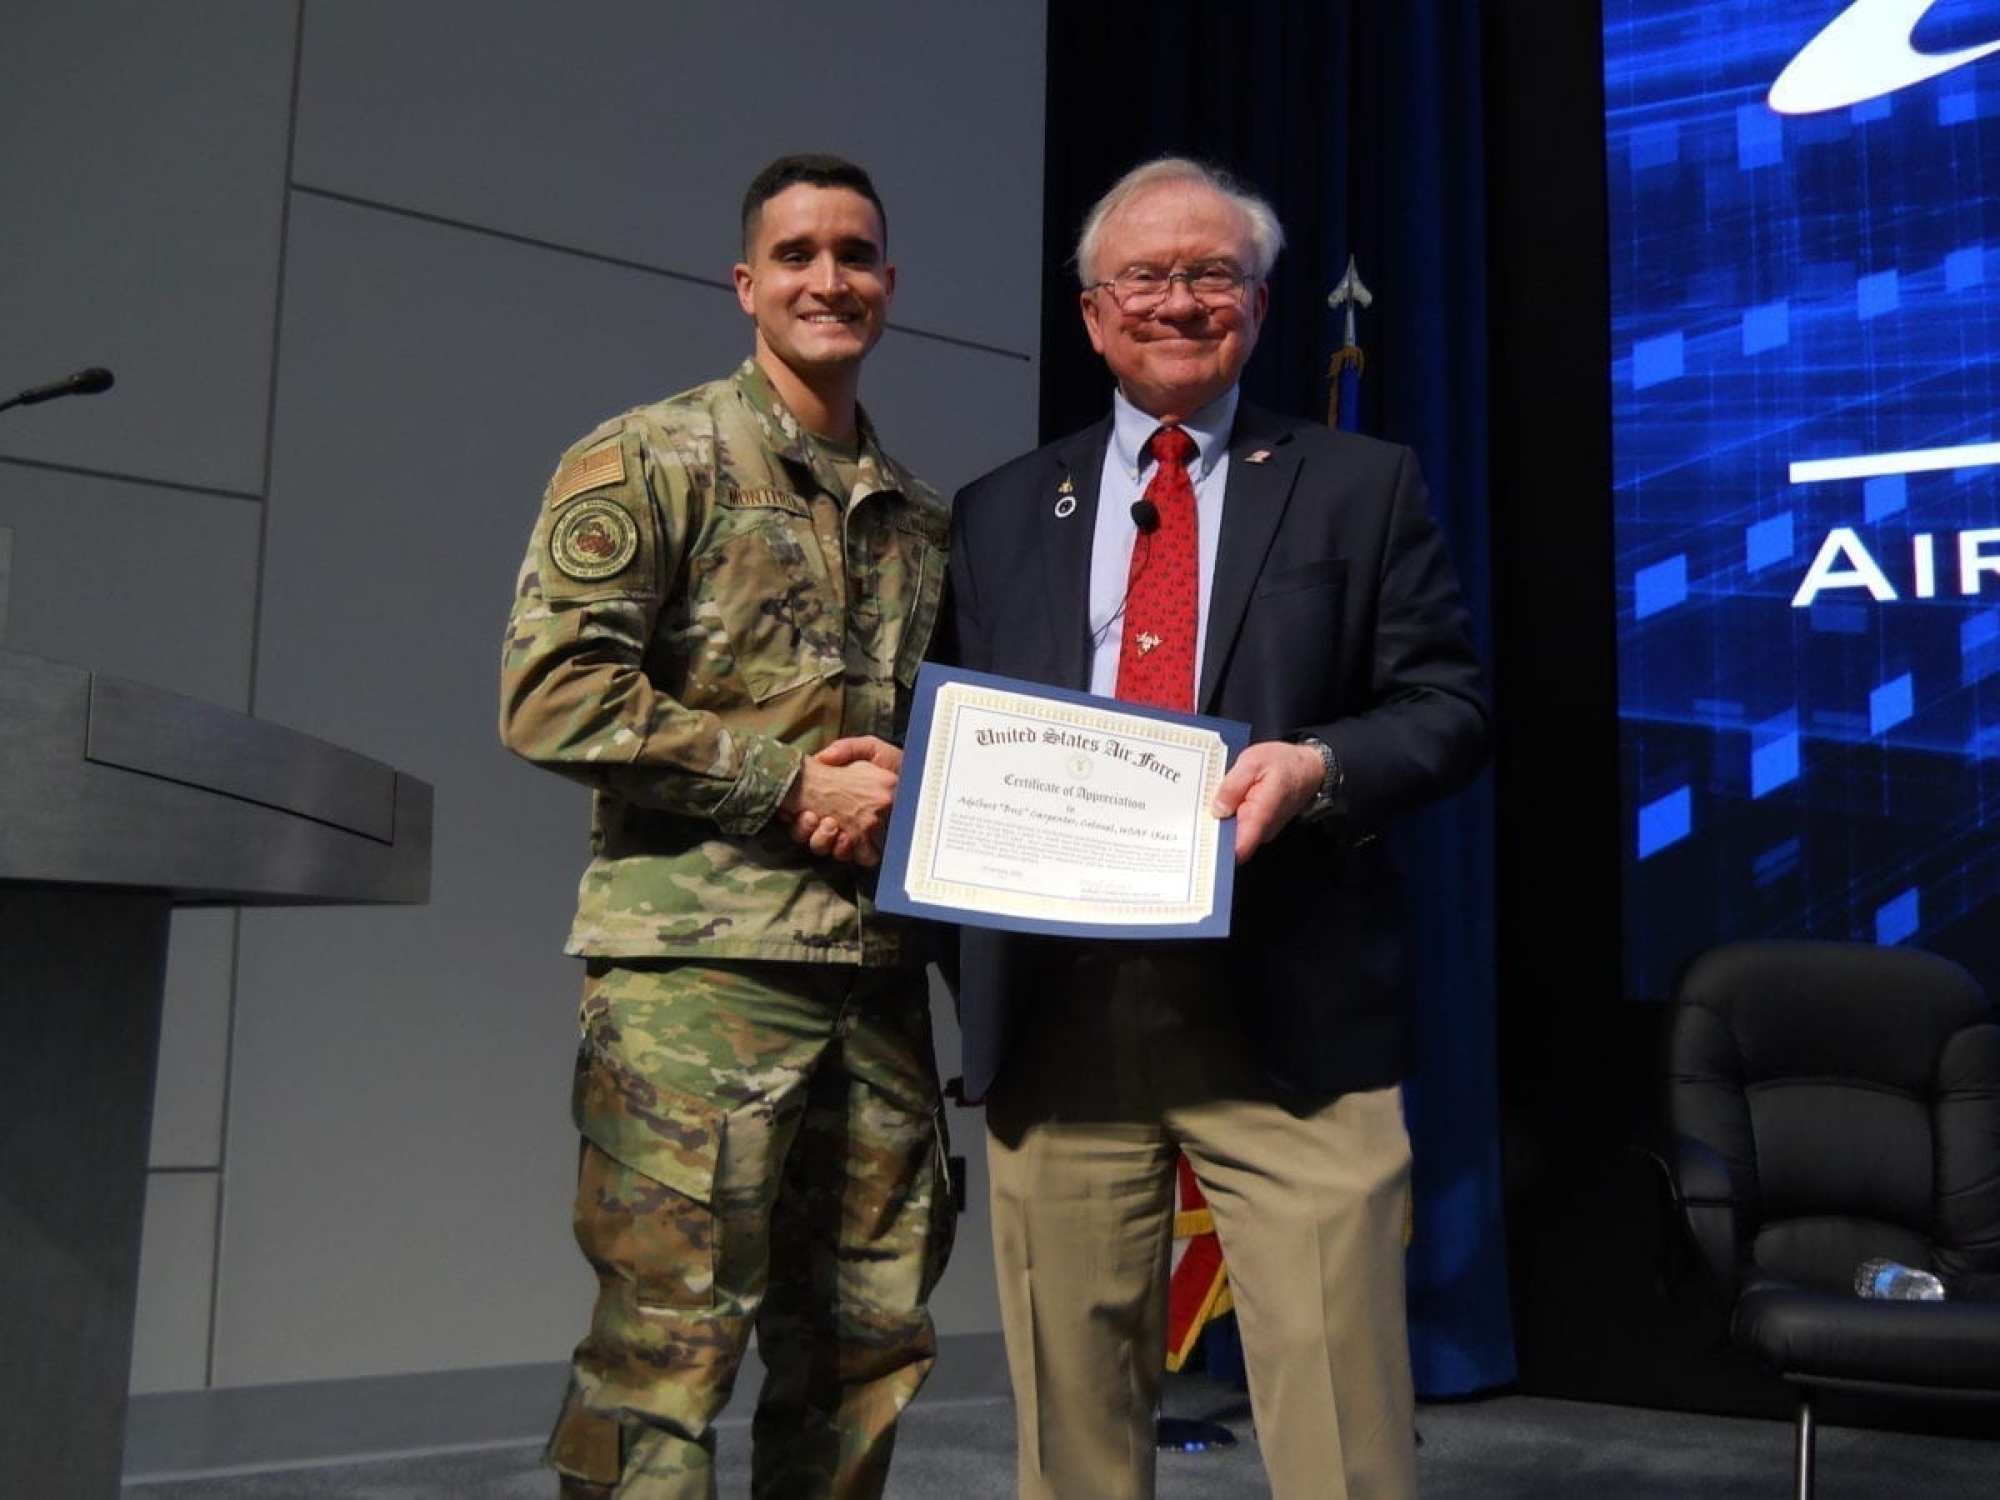 """Second Lt. Joseph Montero, AFLCMC Business and Enterprise Systems Directorate, presents a certificate of appreciation to Col. Adelbert """"Buz"""" Carpenter after his presentation on the SR-71. (courtesy photo)"""